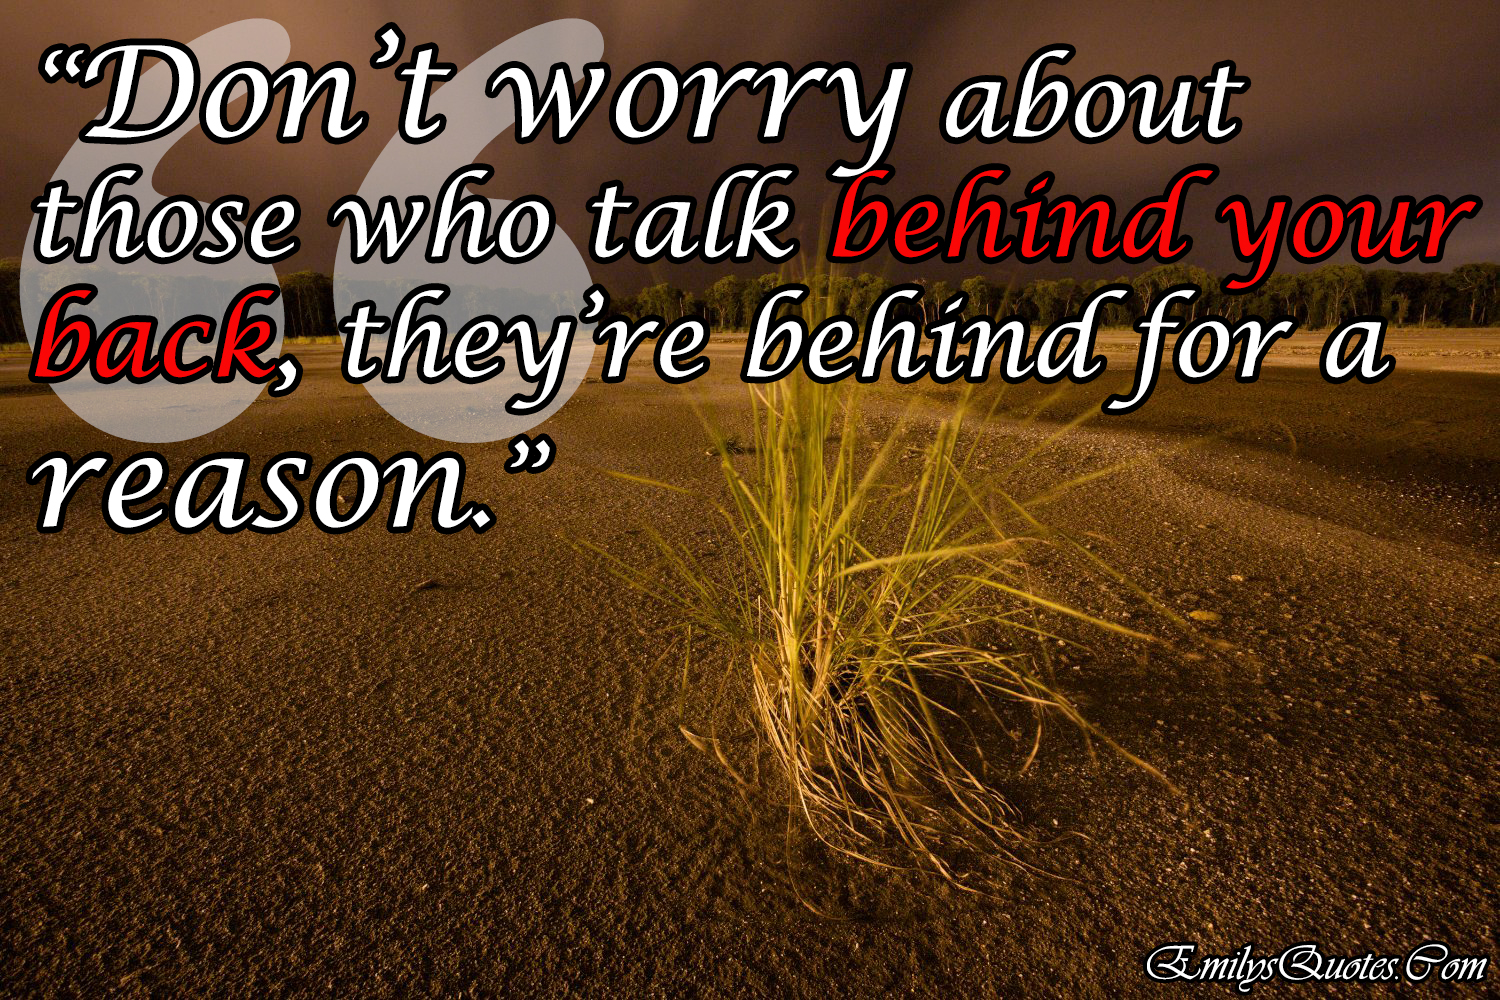 Positive Christian Quotes Don't Worry About Those Who Talk Behind Your Back They're Behind